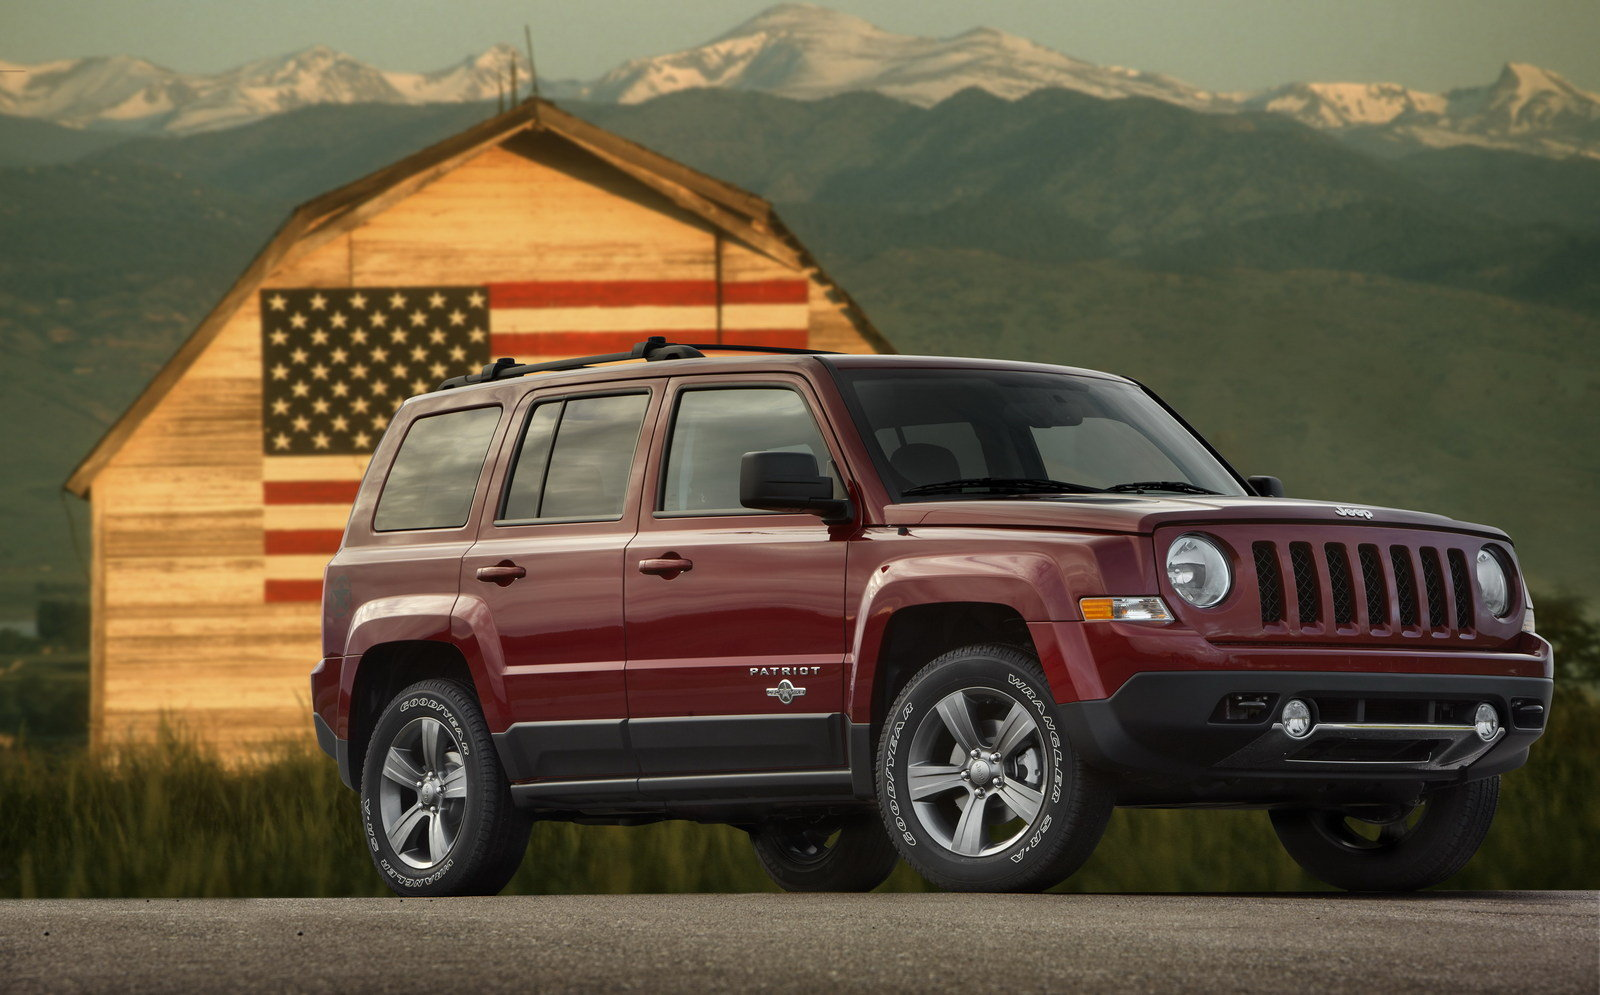 2013 jeep patriot freedom edition review top speed. Black Bedroom Furniture Sets. Home Design Ideas